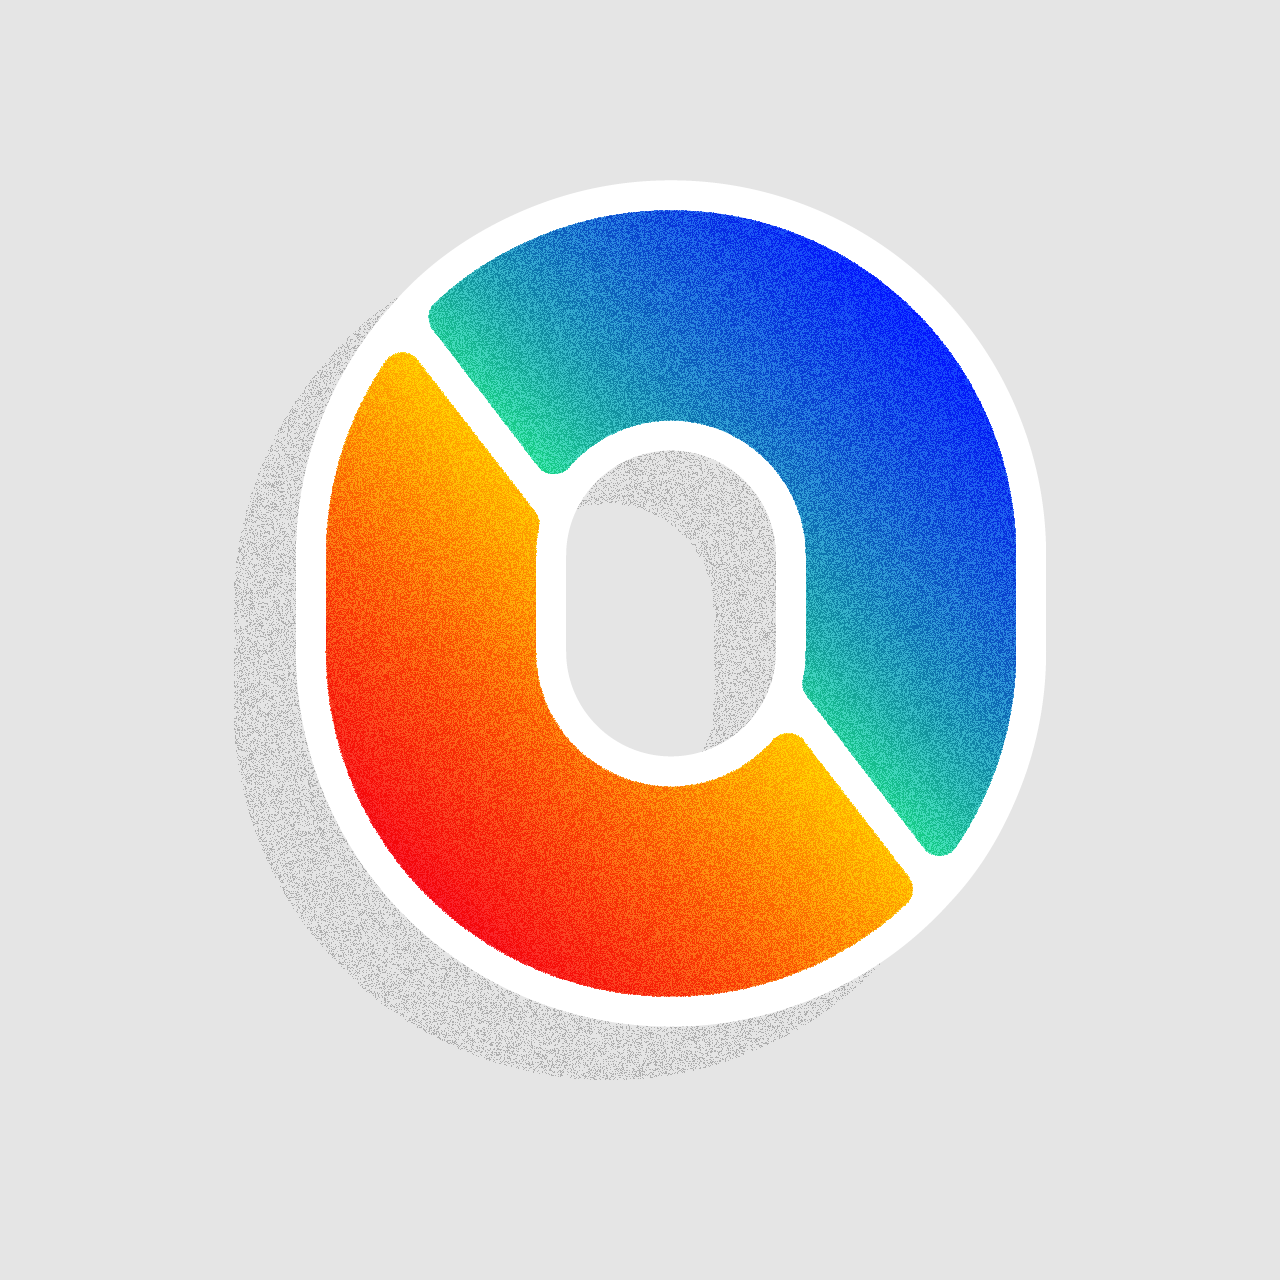 My O submission for 36 Days of Type